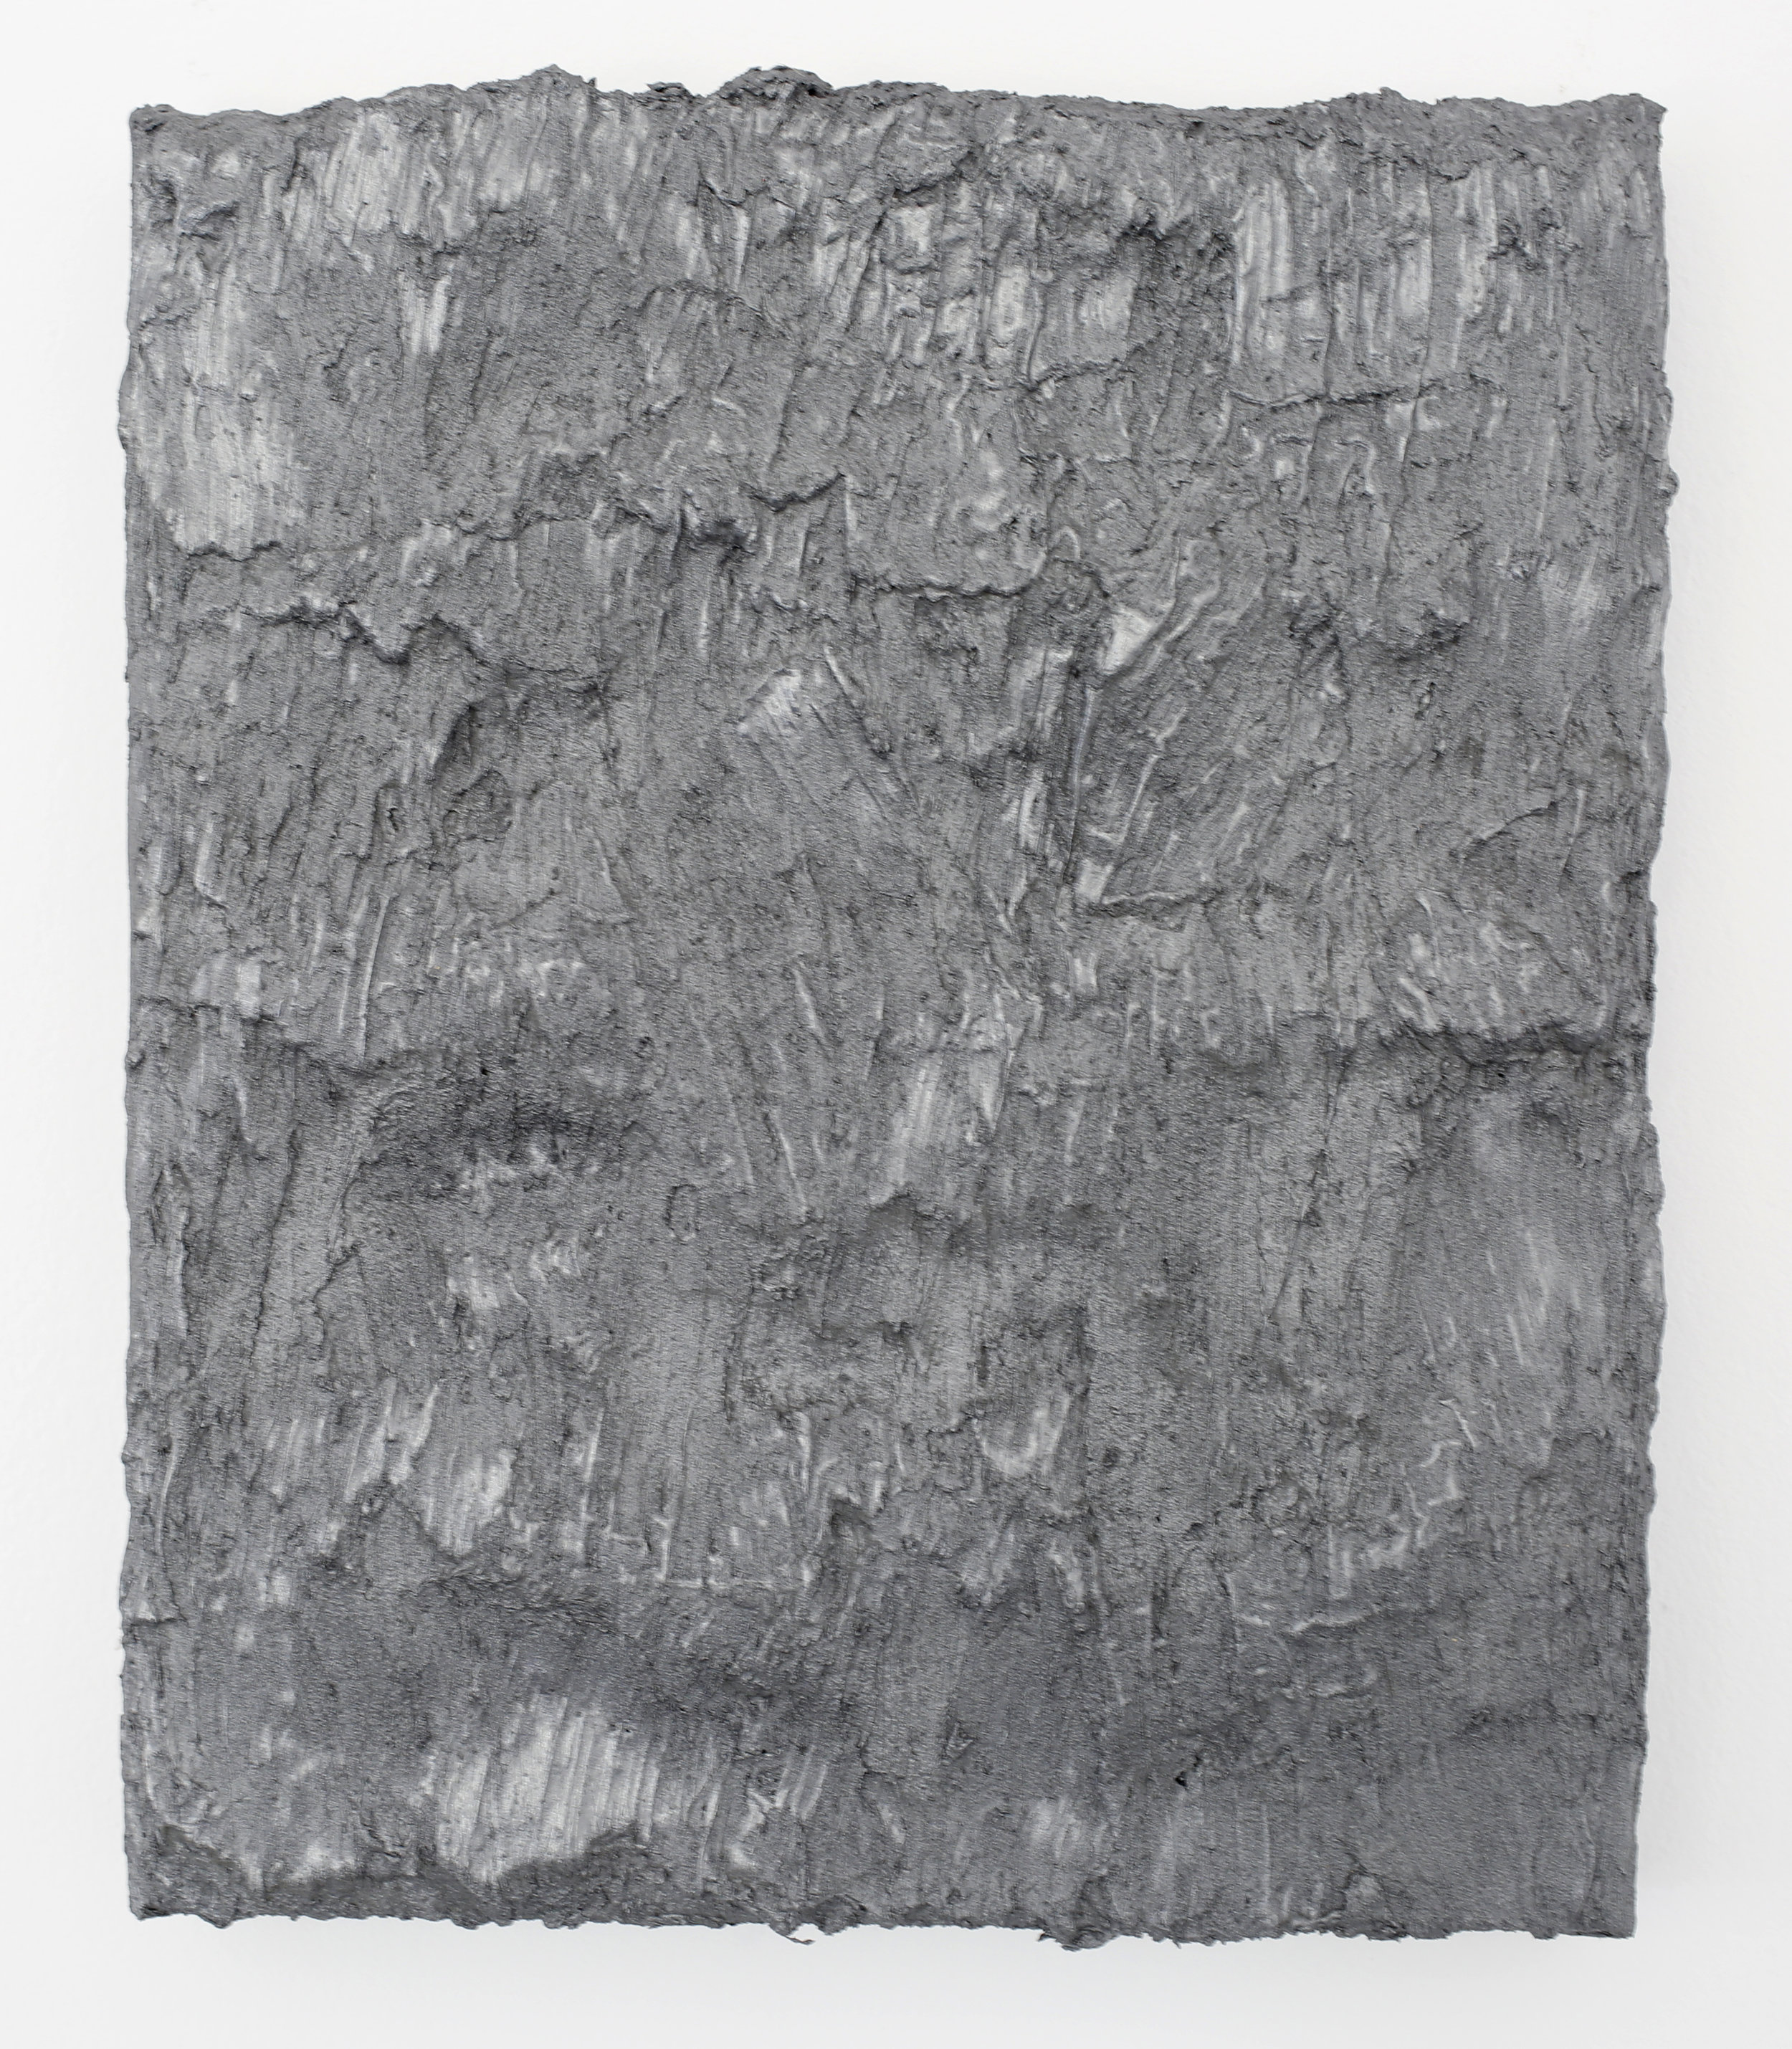 DAVID SERISIER  Silver Painting 1 , 2003 - 2018 oil and wax on linen 31.5 x 26 cm